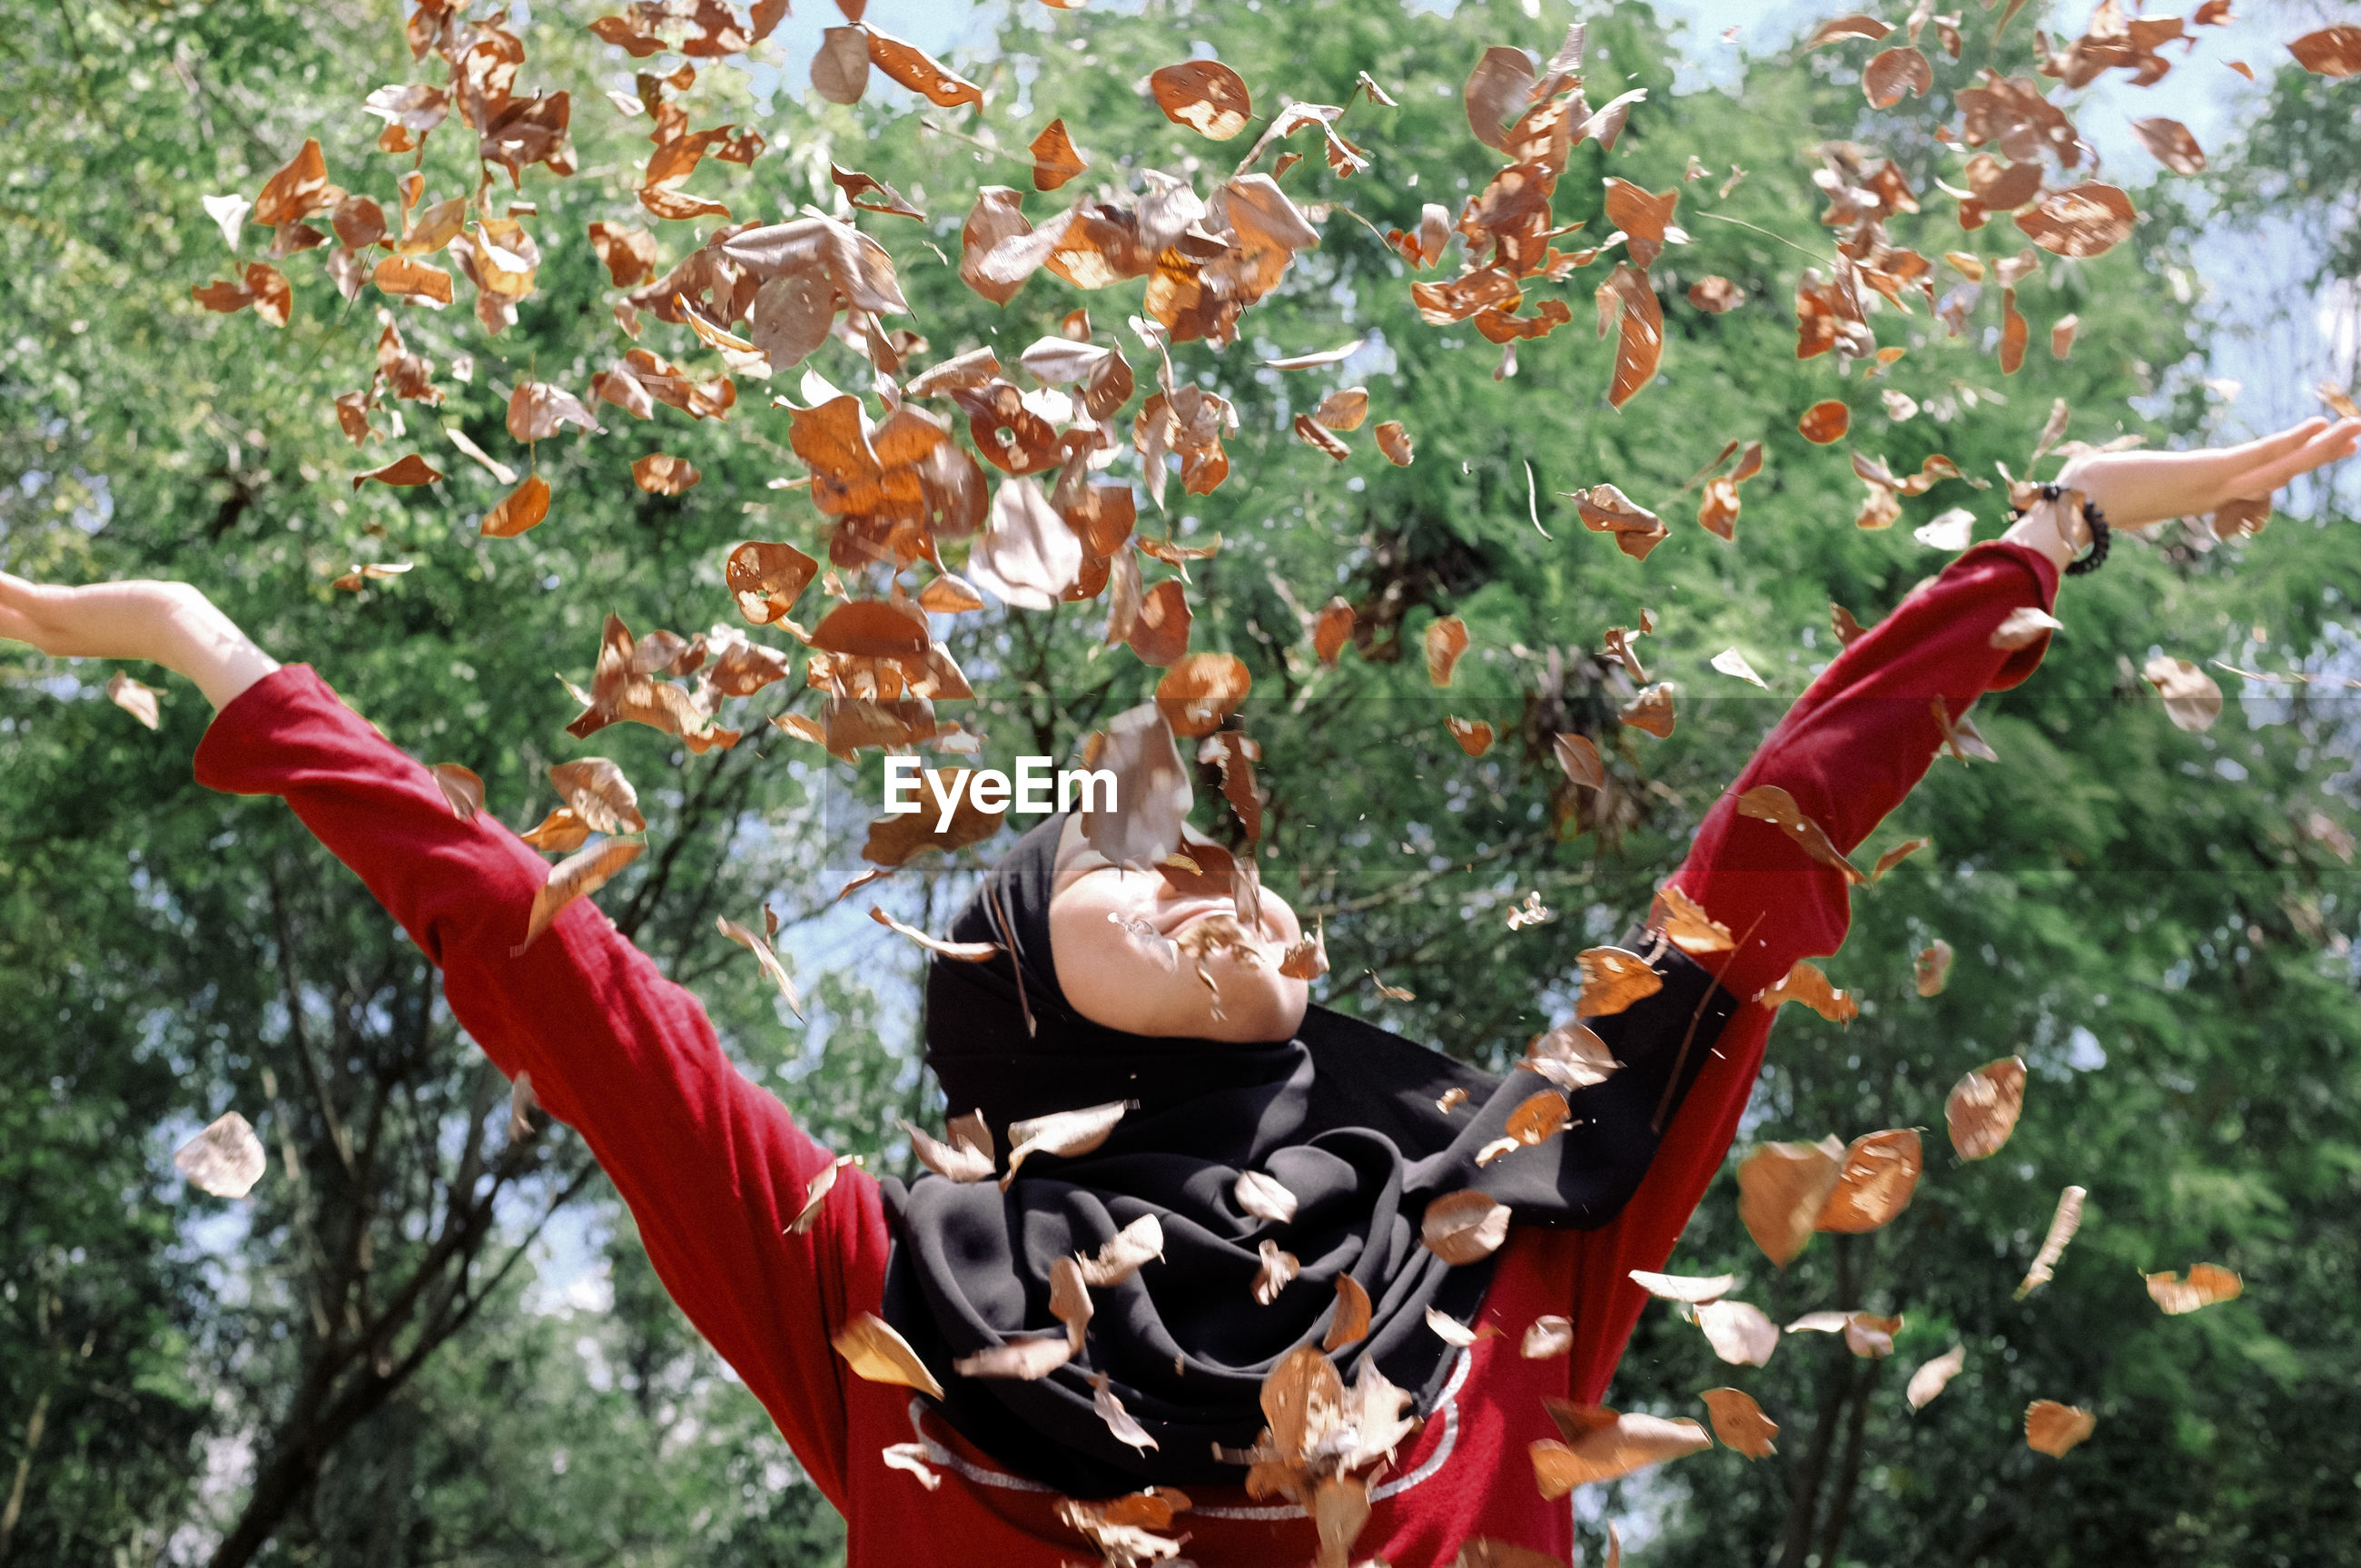 A girl in hijab throwing dried leaves up in the air